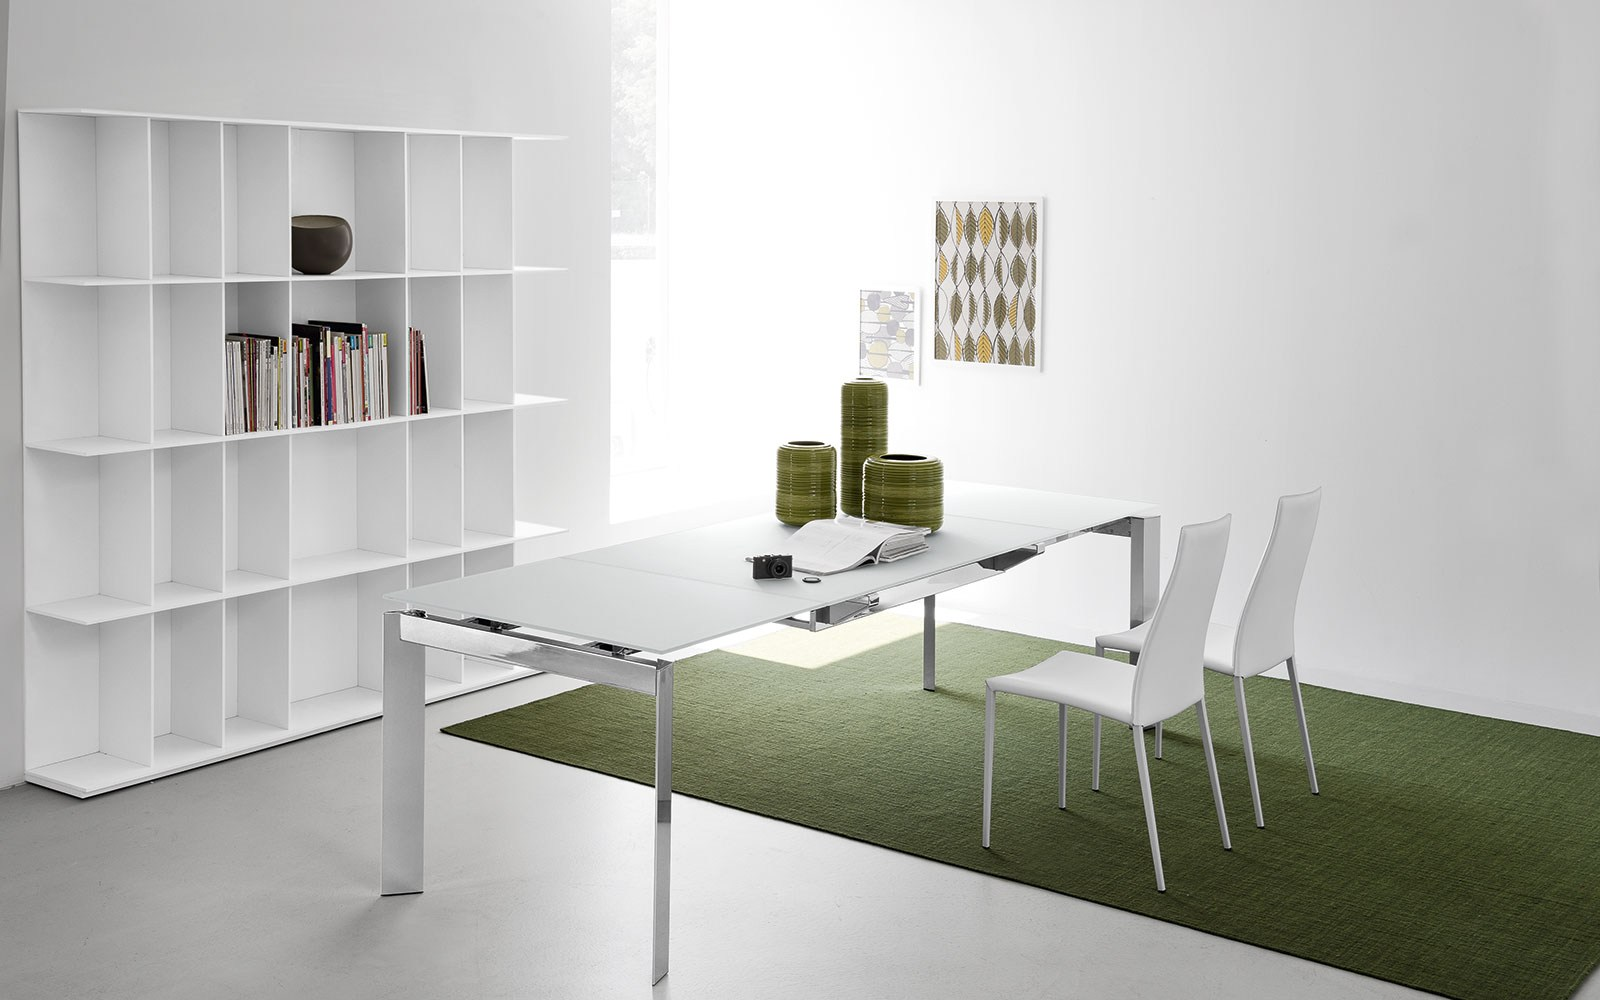 Meuble Calligaris Division Bibliothèque Double Face By Calligaris